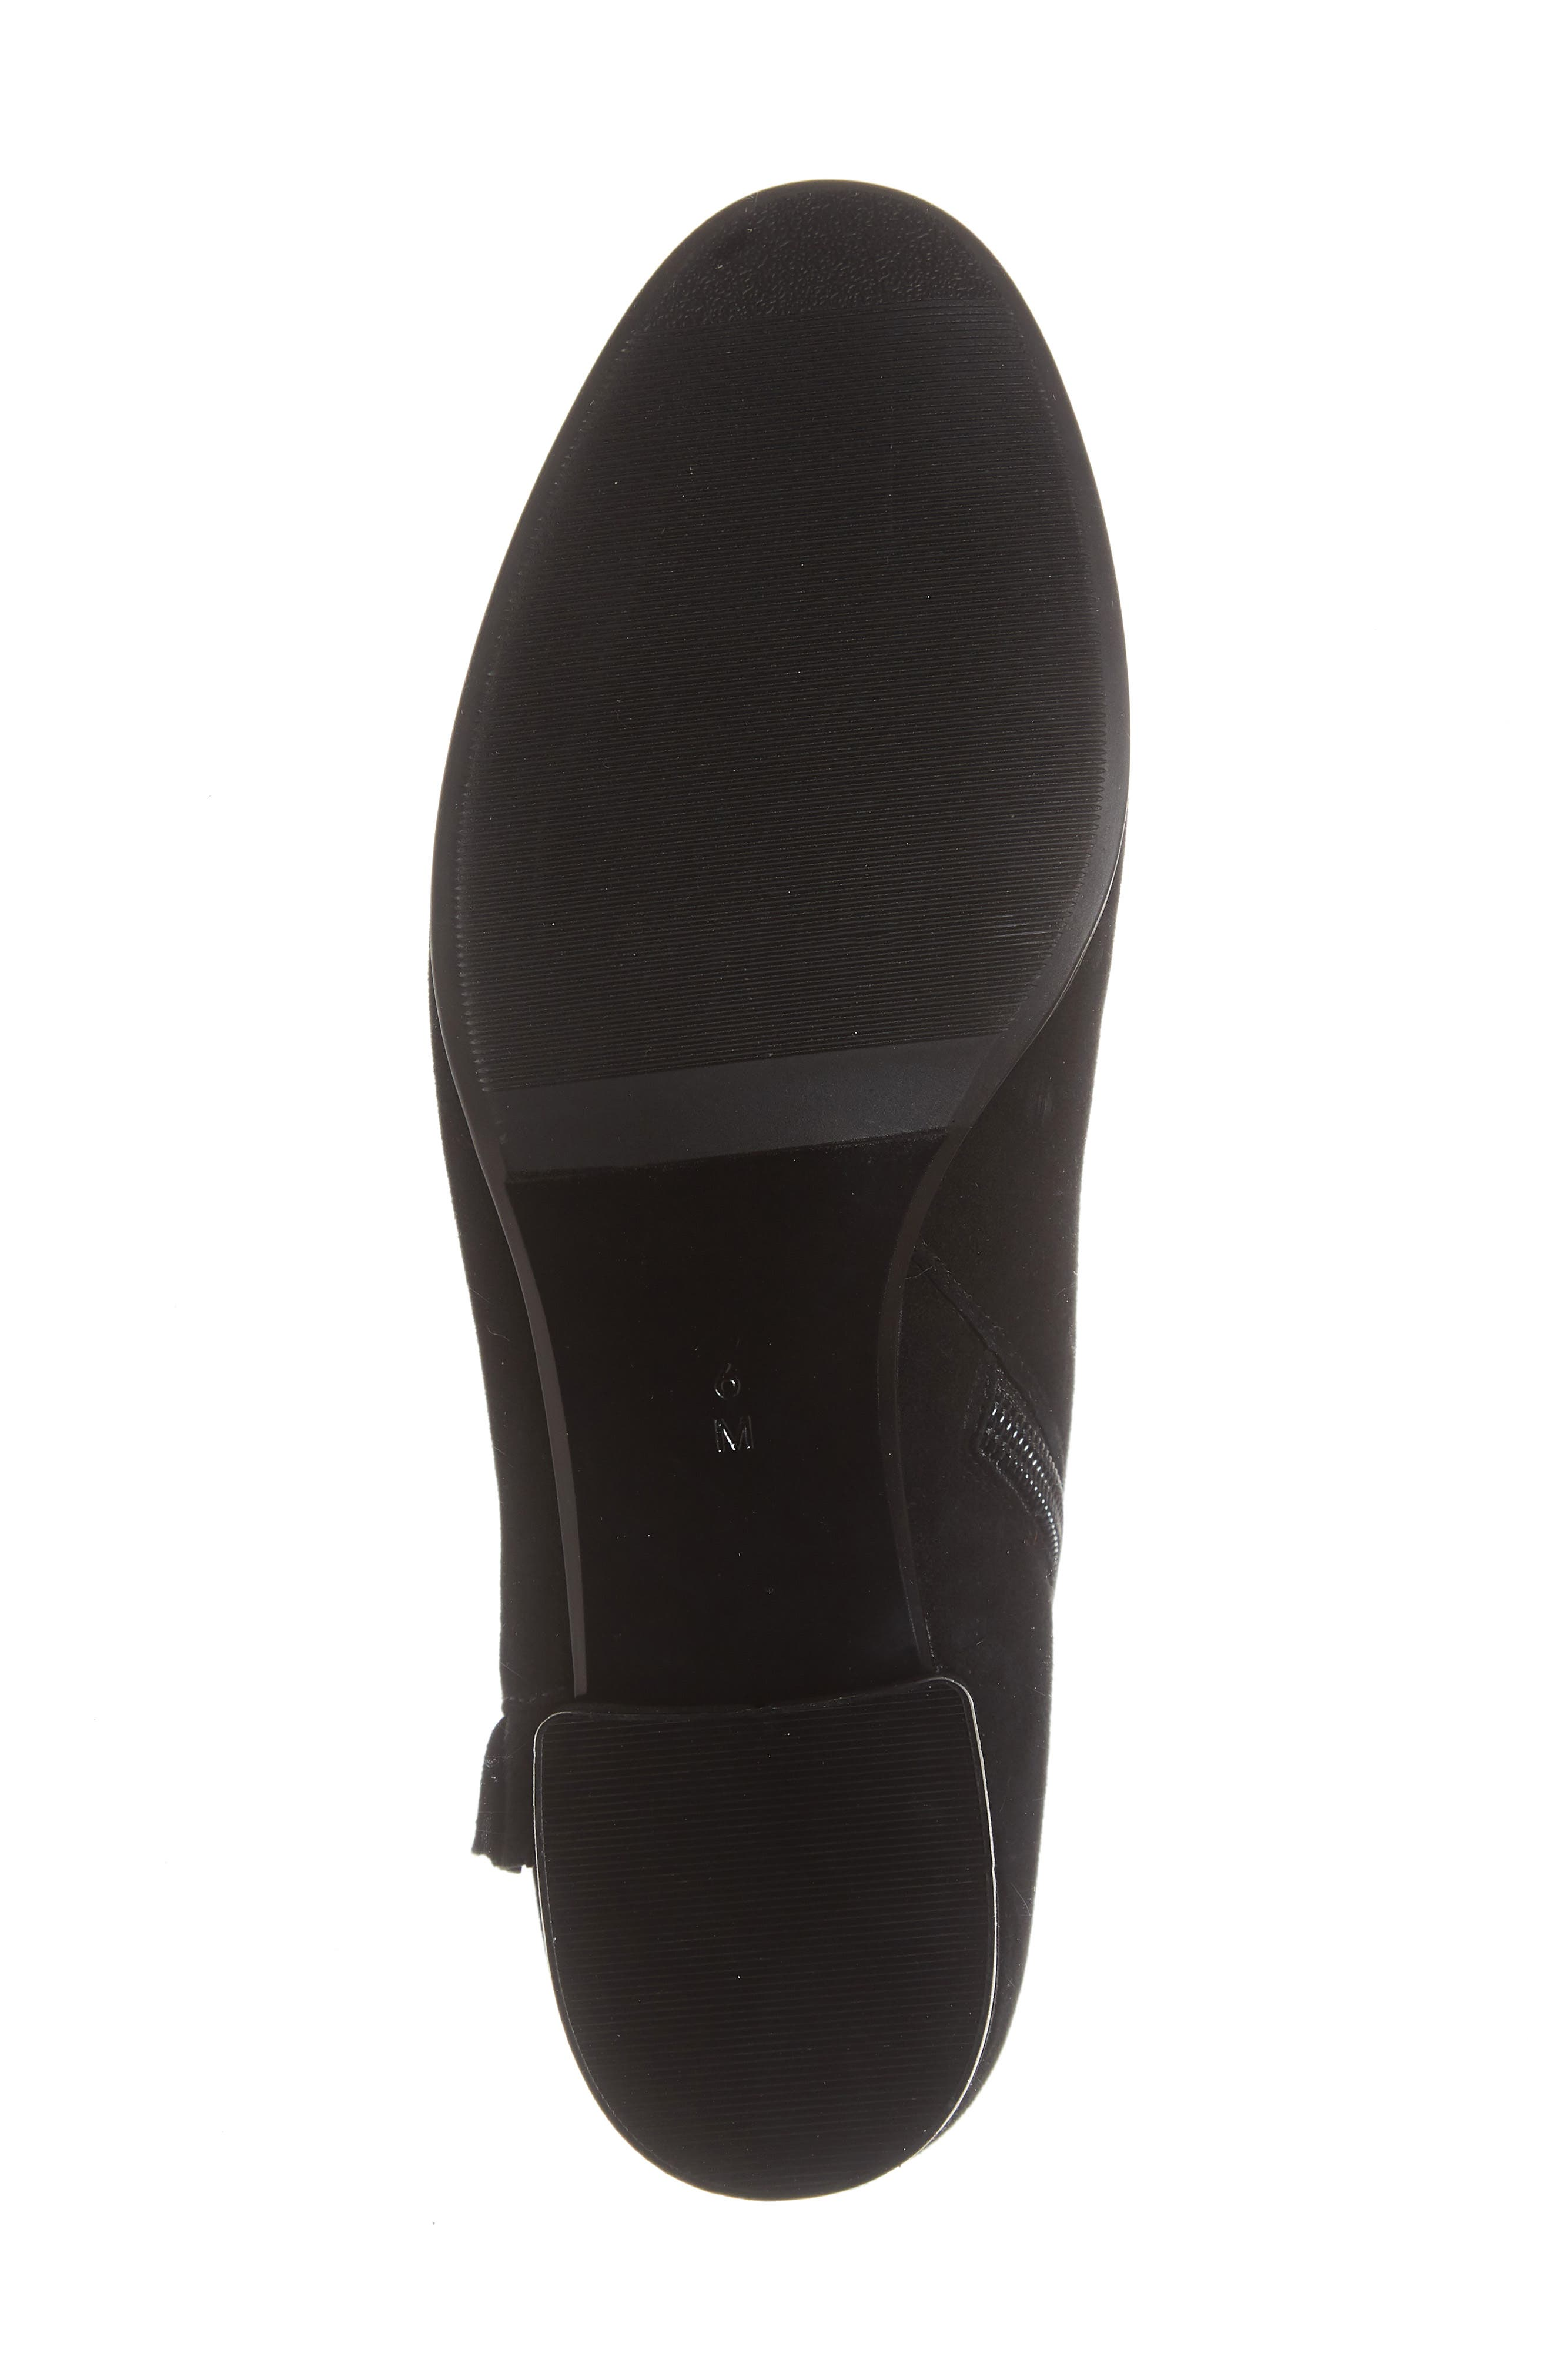 Amoke Bootie,                             Alternate thumbnail 6, color,                             BLACK SUEDE